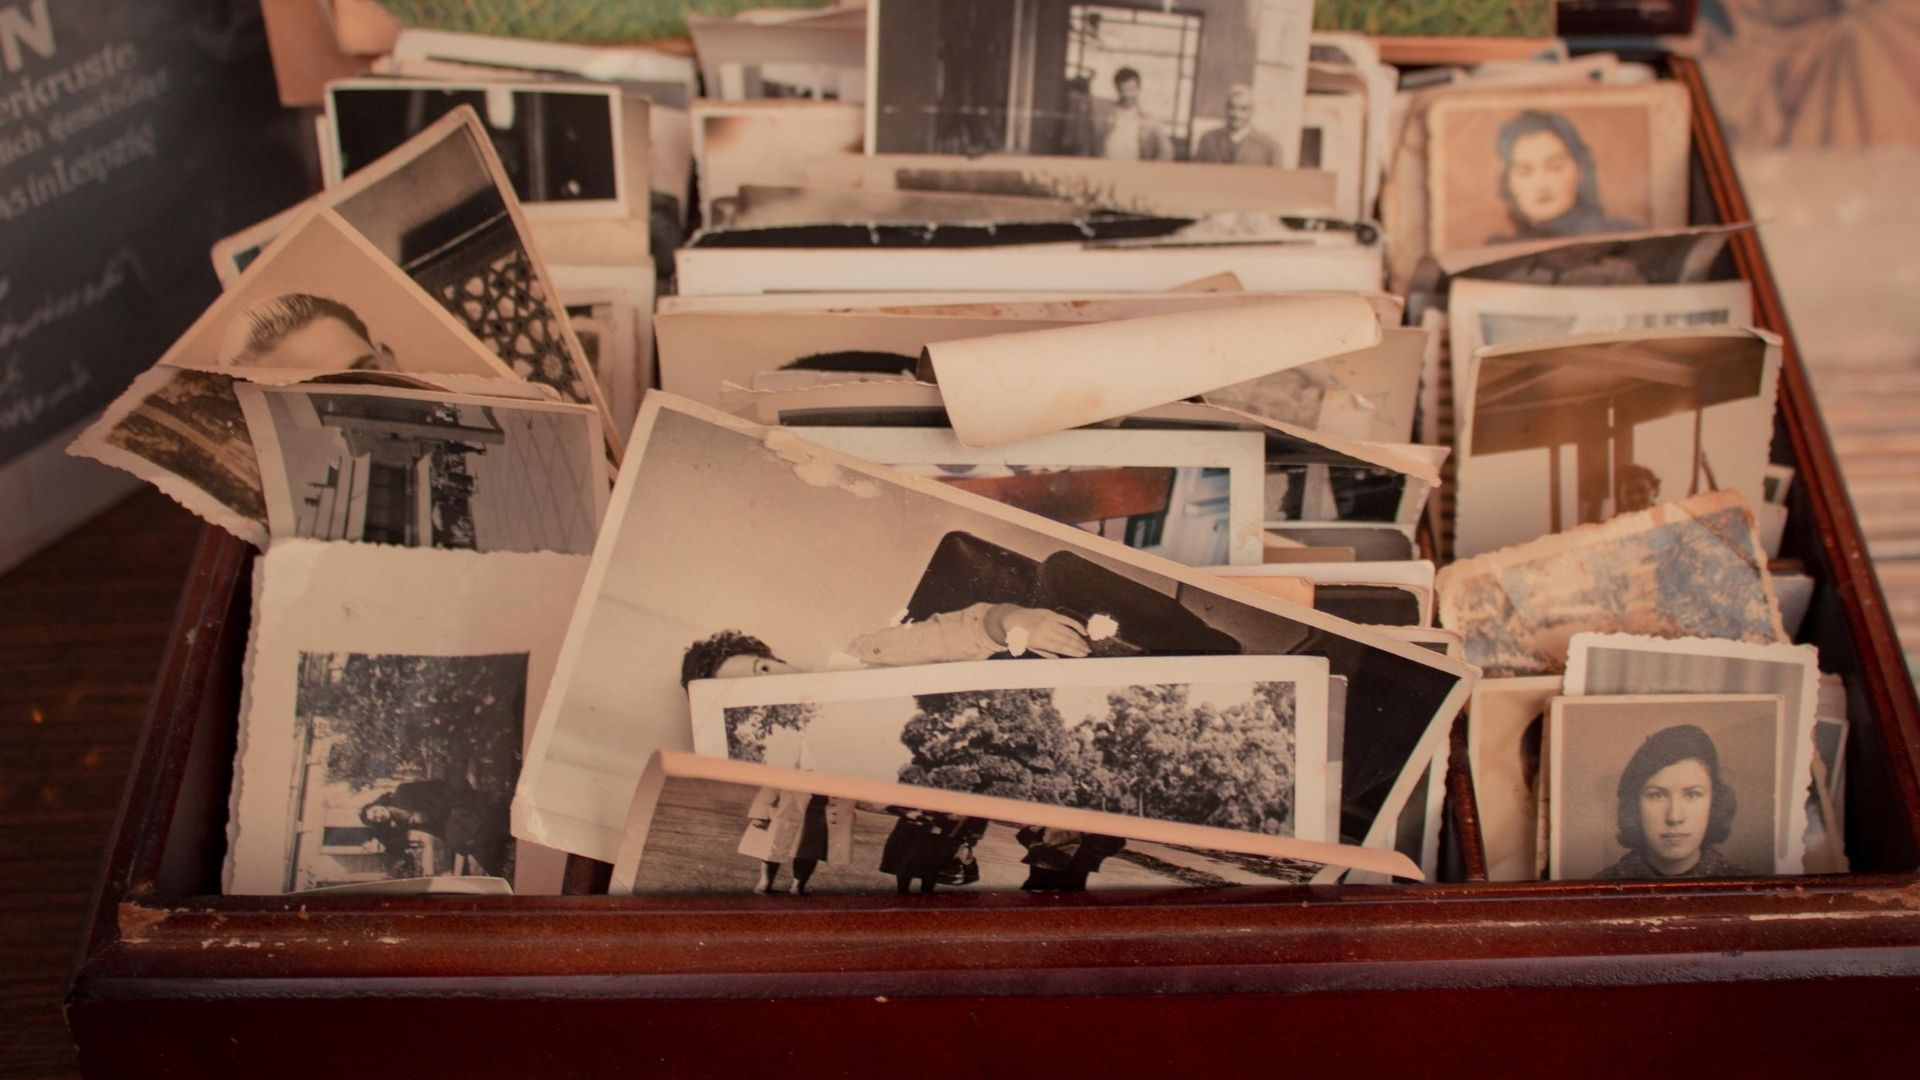 How to write a perfect eulogy - a wooden box containing old black and white photographs